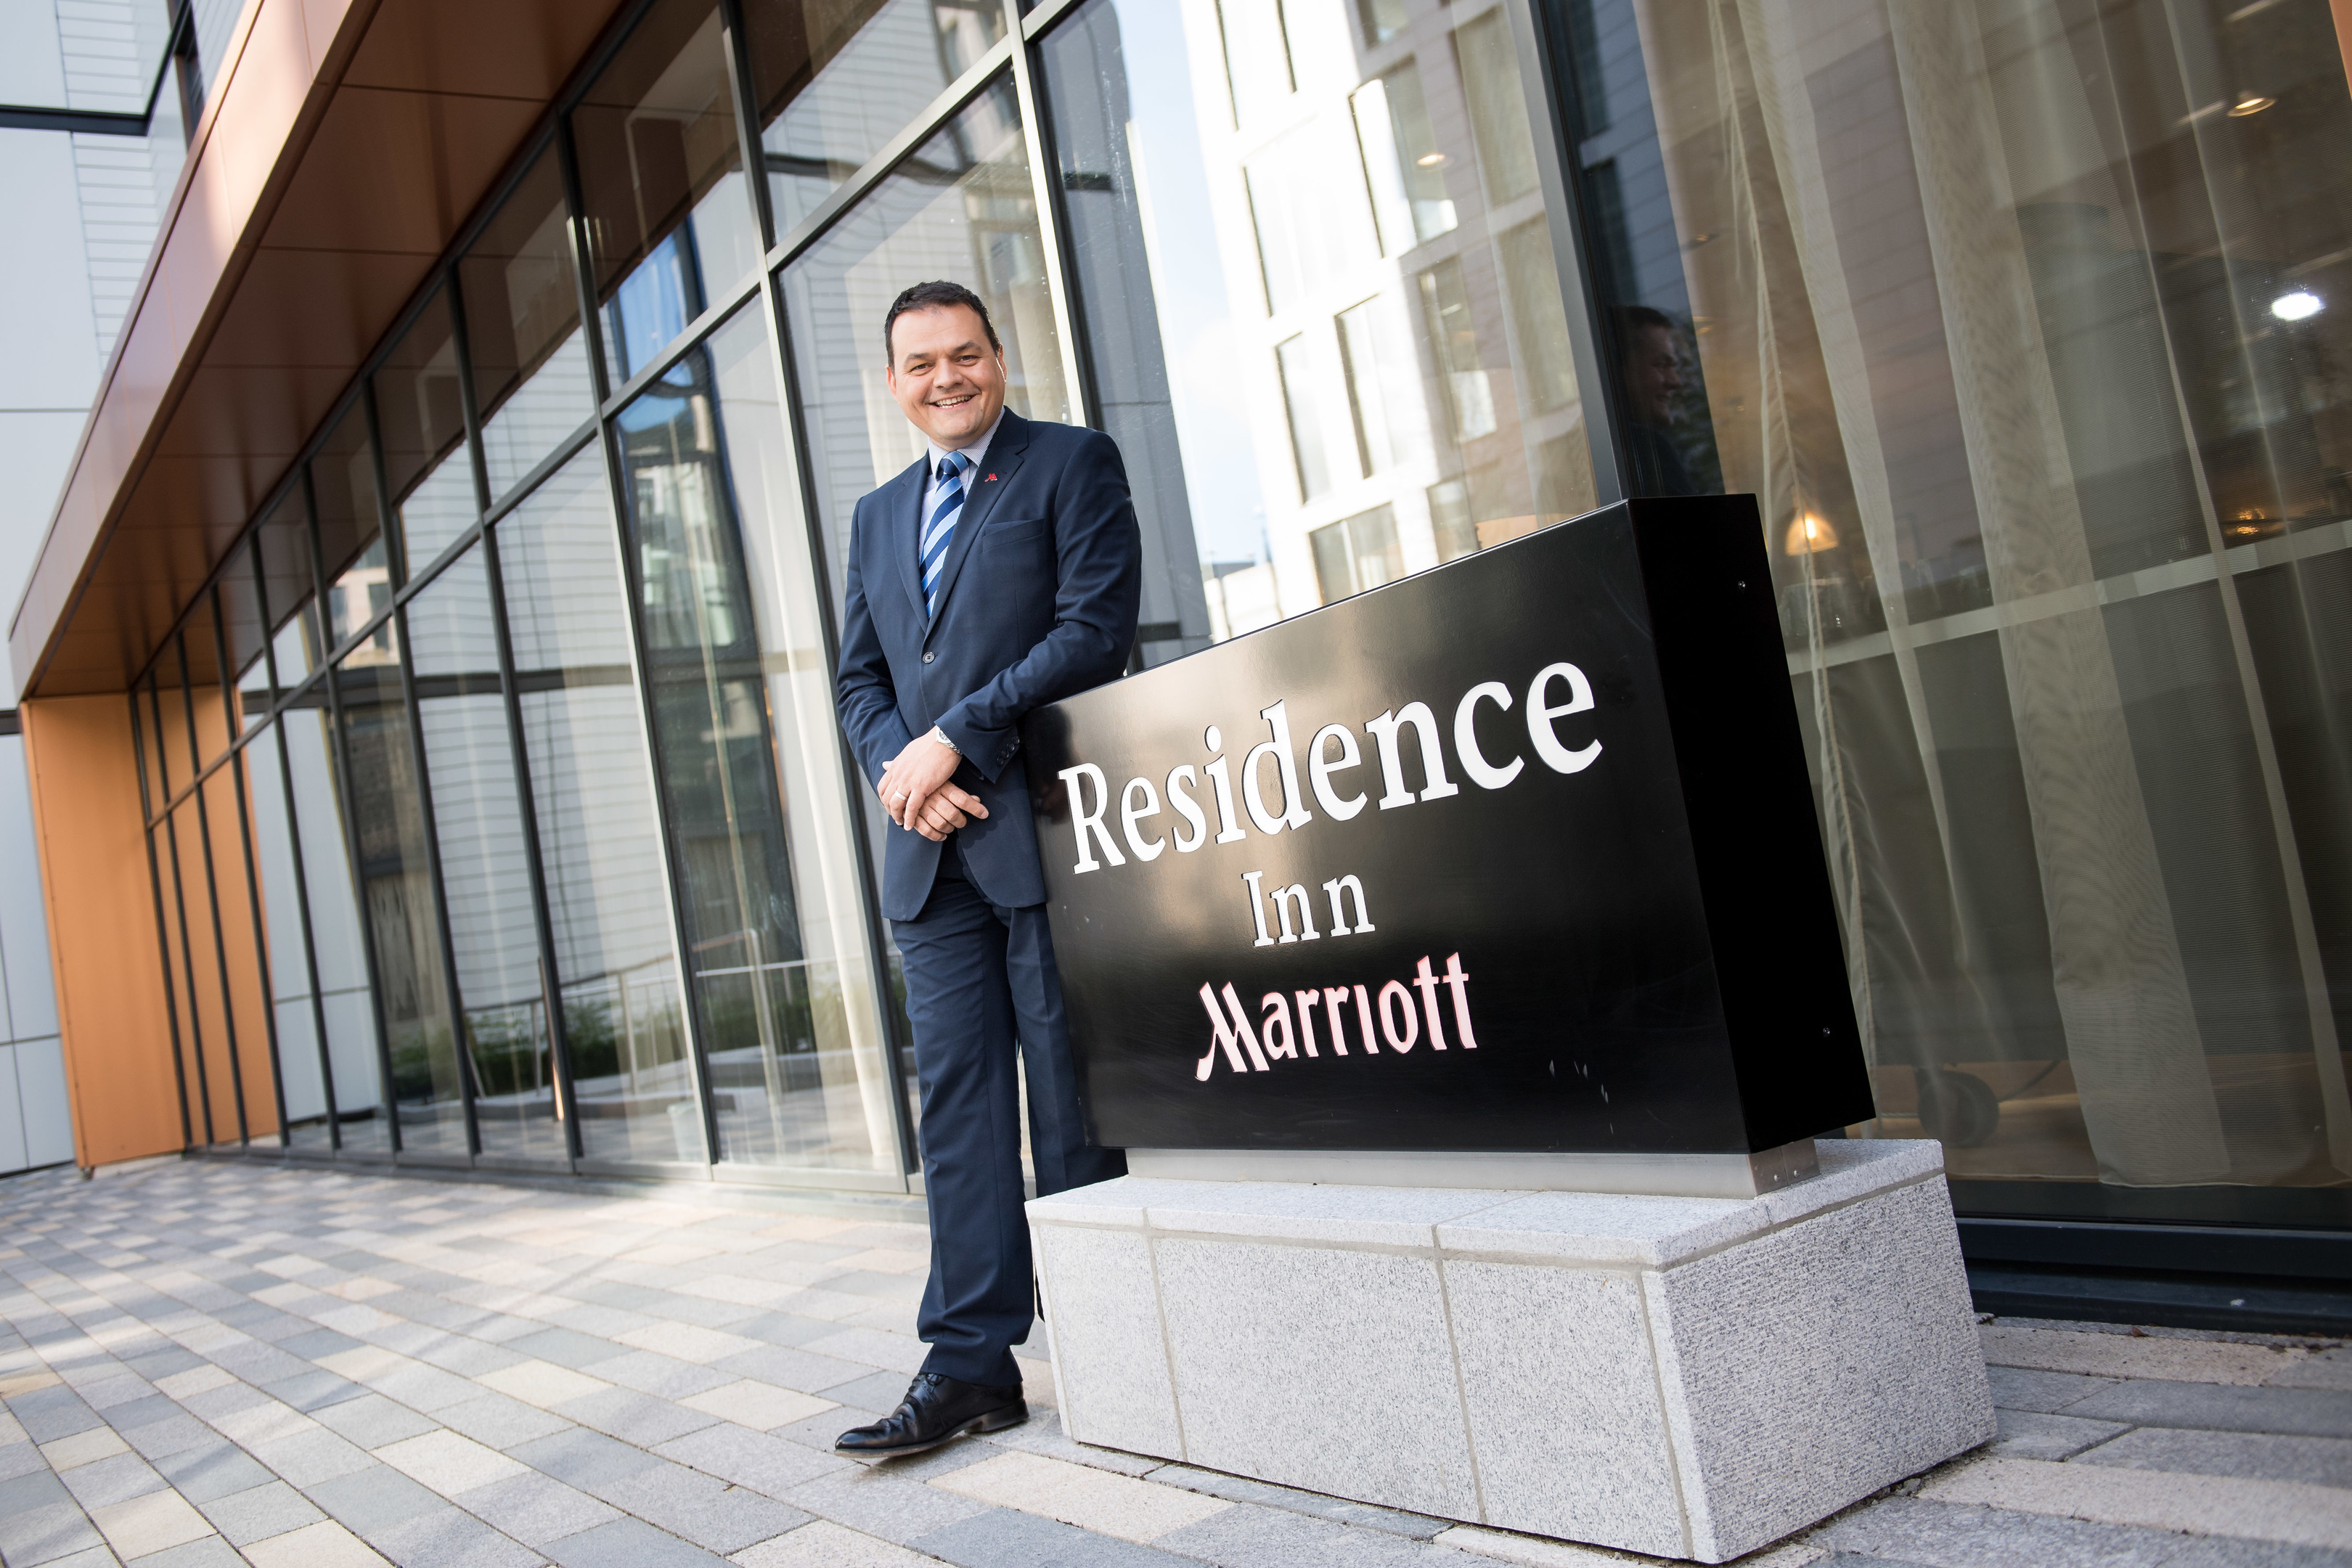 The  new Residence Inn by Marriott has opened to guests, located in Aberdeens new Marischal Square development. Pictured is Chris Wayne- Willis, General Manager, Scotland & North Cluster, Marriott.